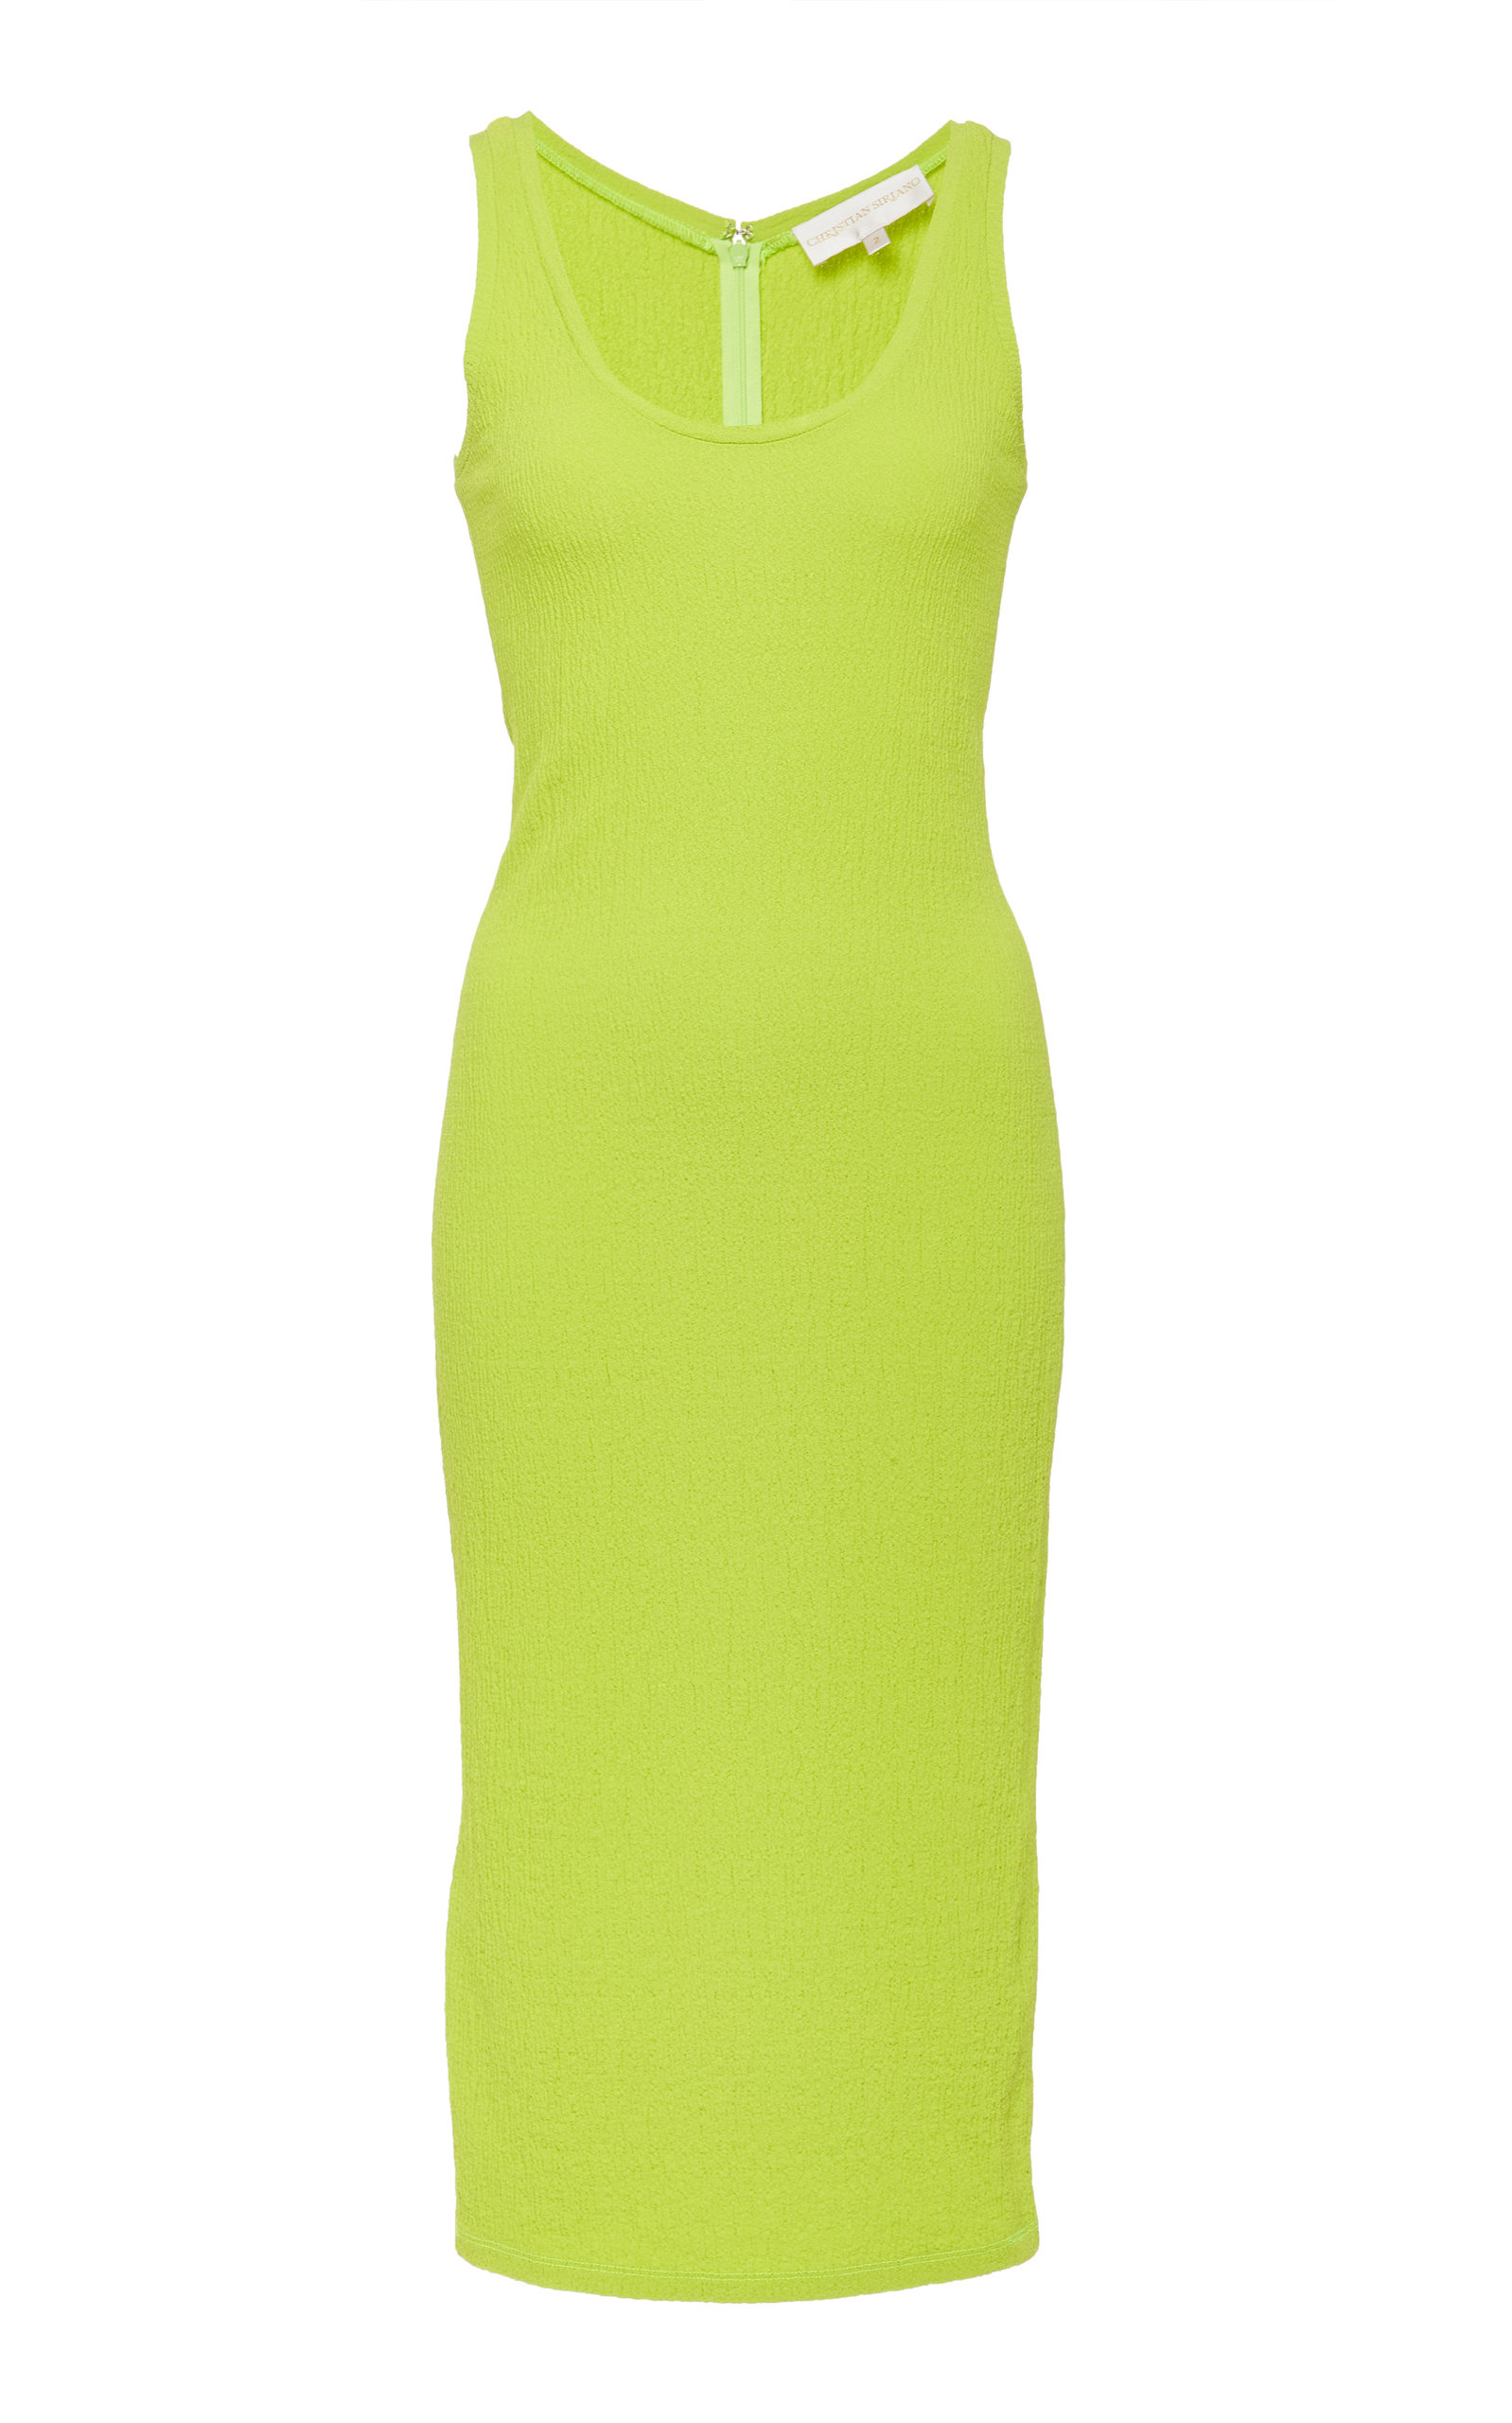 Christian Siriano SCOOP NECK CREPE DRESS